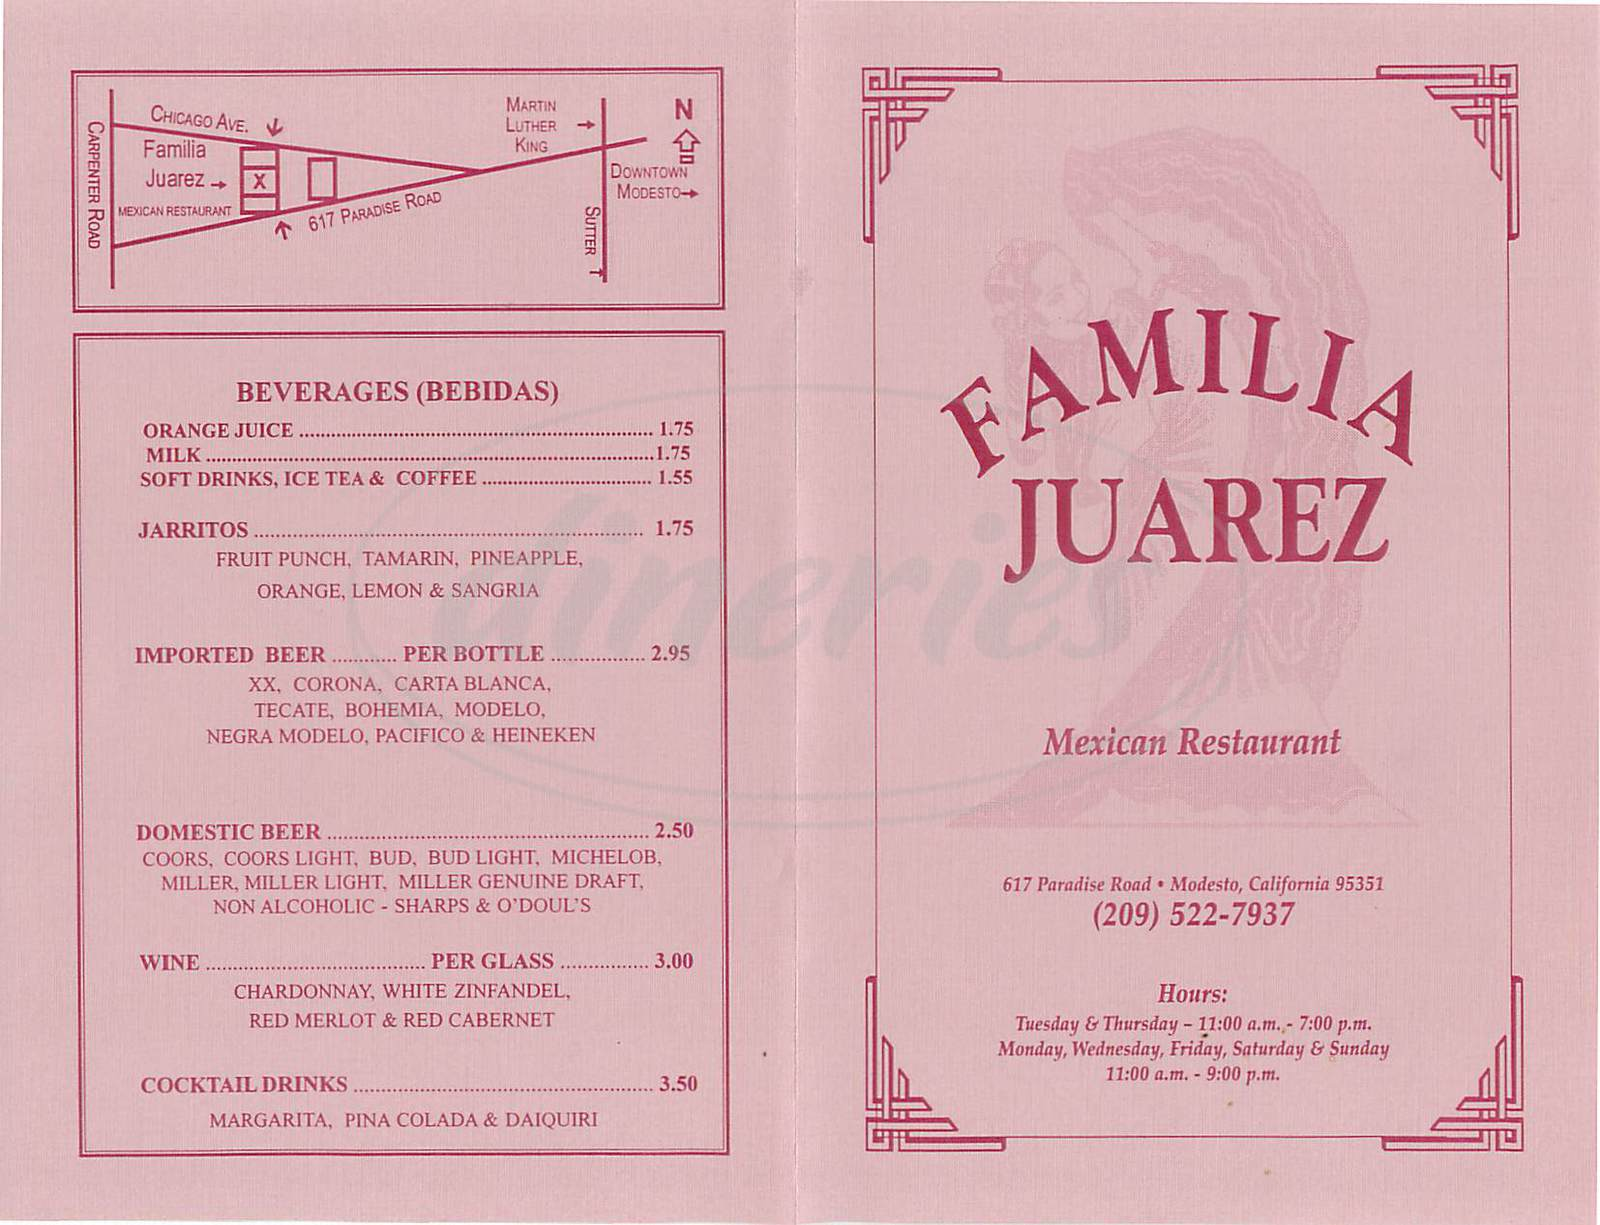 menu for Familia Juarez